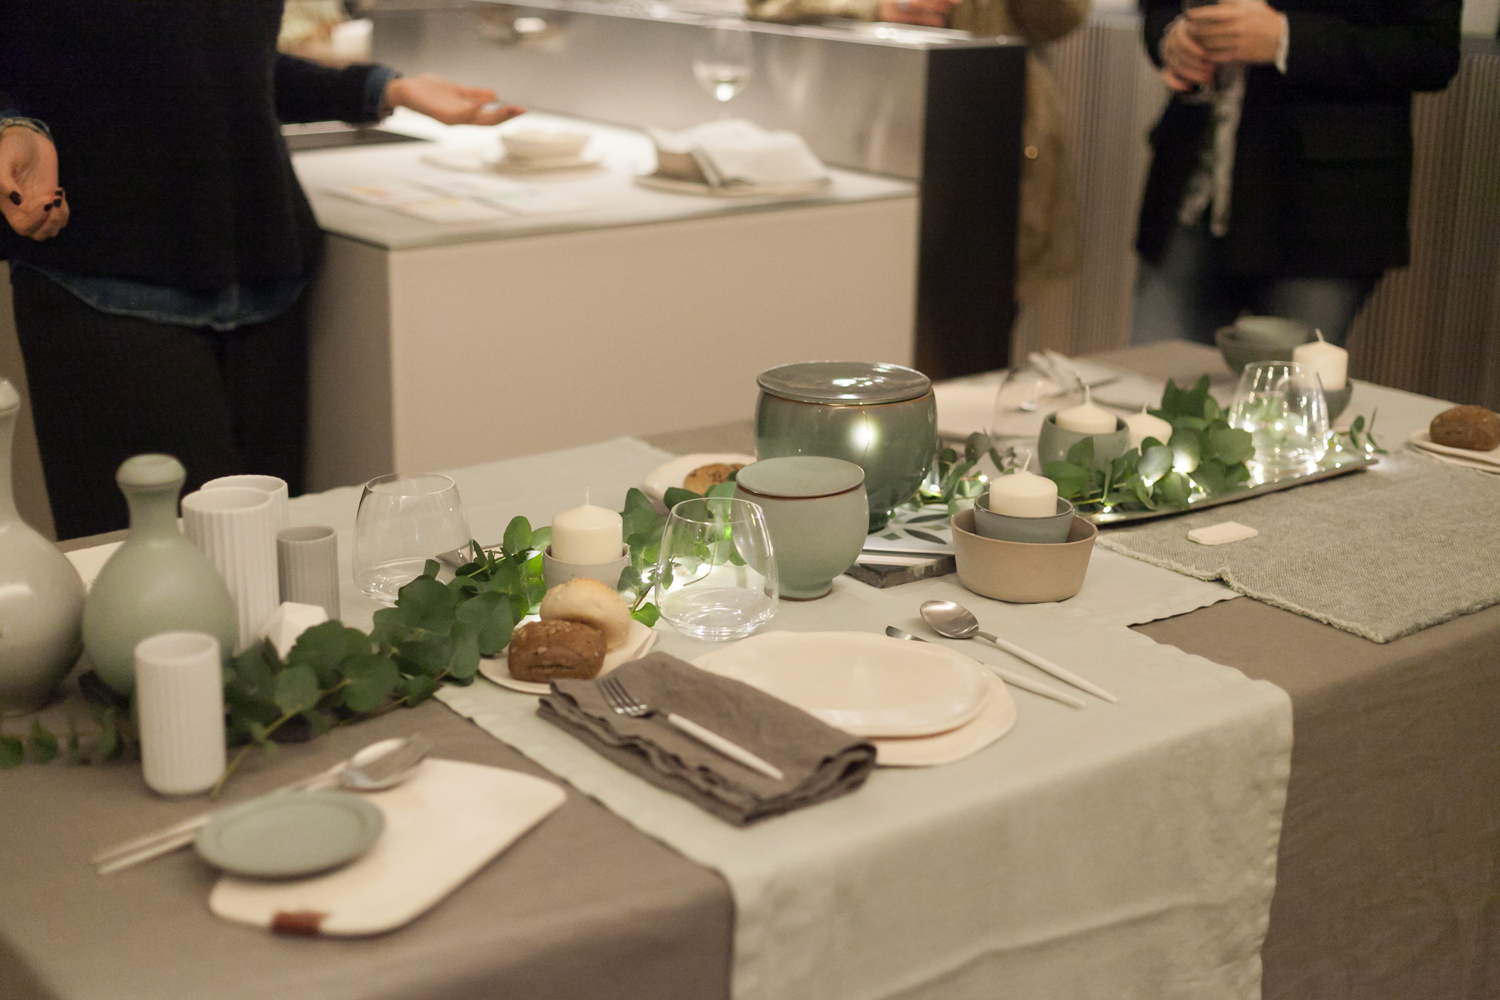 SET THE TABLE STYLING EVENTO SPAZIO MATERIAE NAPOLI FORME DI FARINA TAVOLA NATALE PHOTO (10 di 16).jpg